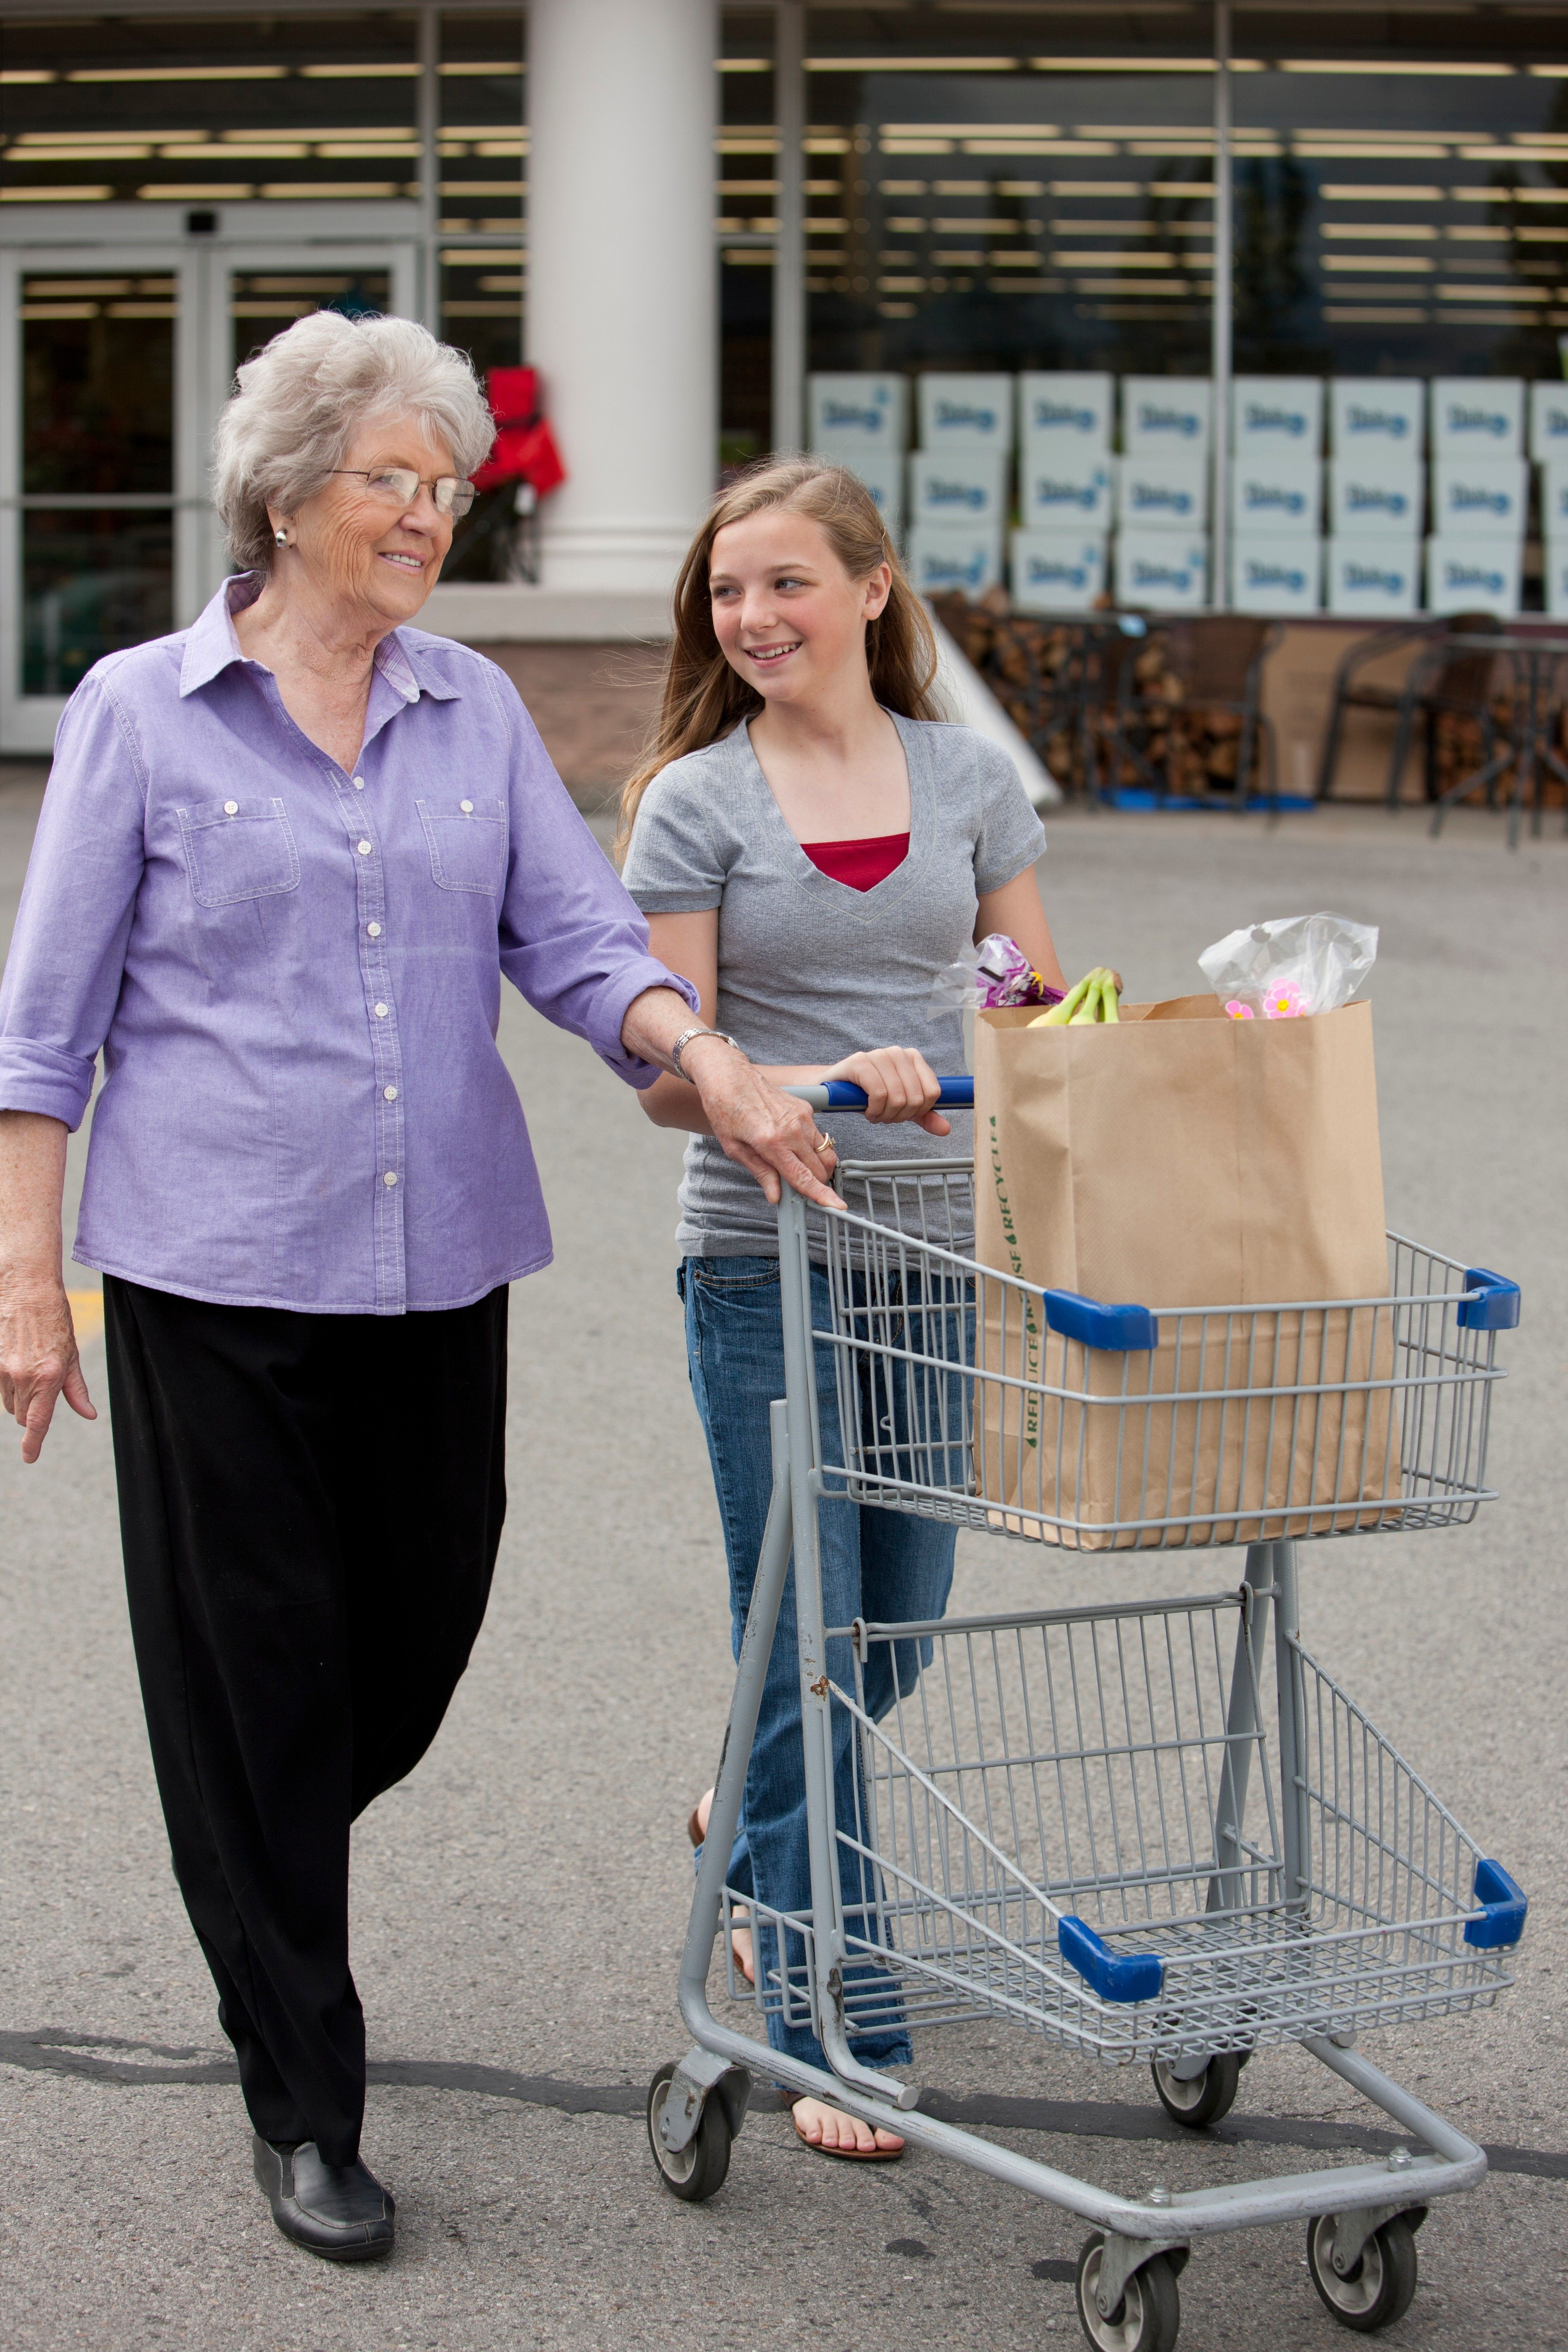 A young woman helps push a cart for an elderly woman with her groceries.